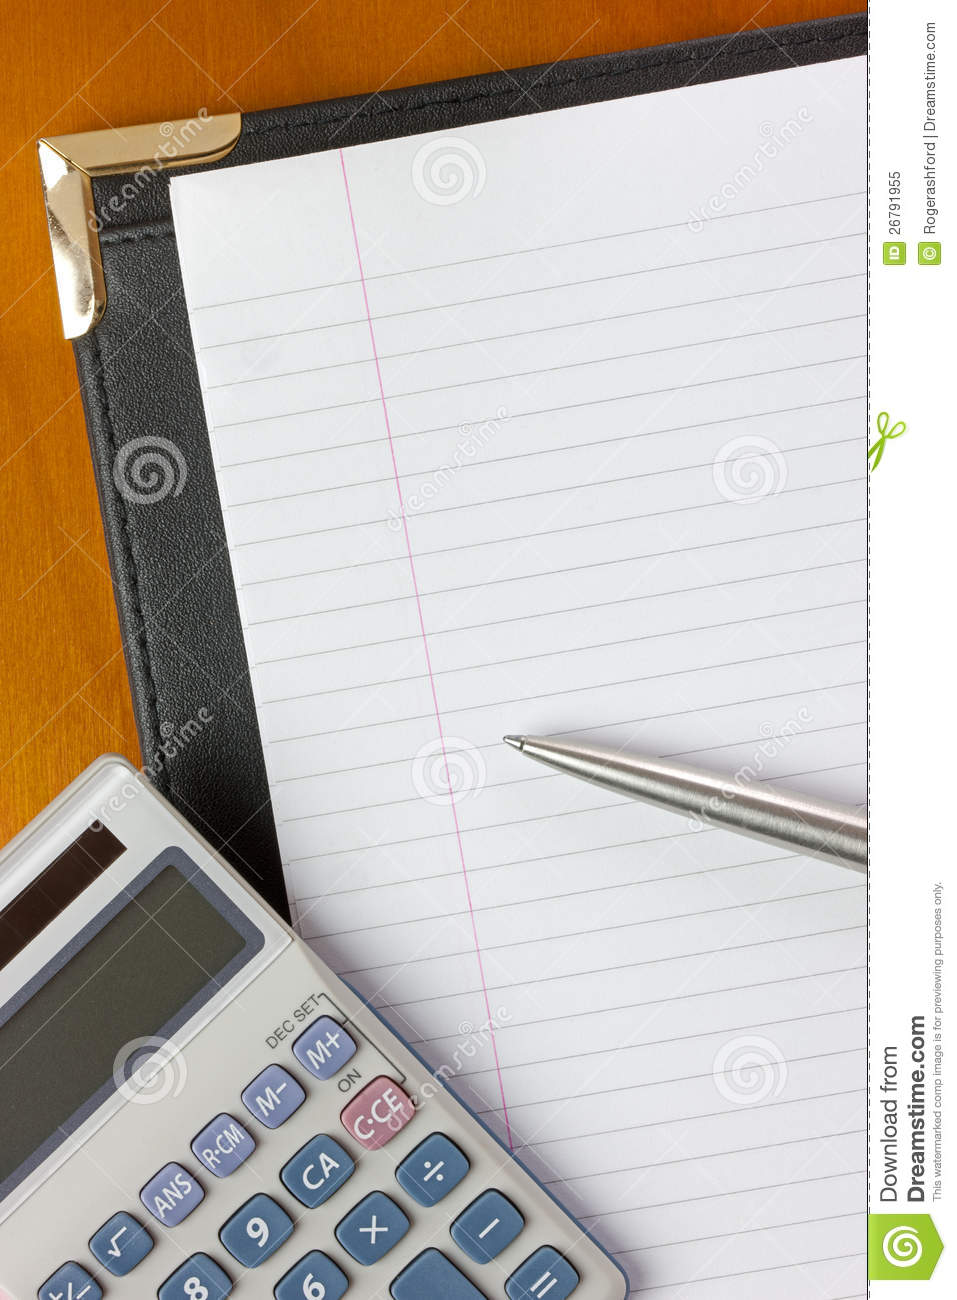 Conference Folder Calculator And Pen Royalty Free Stock